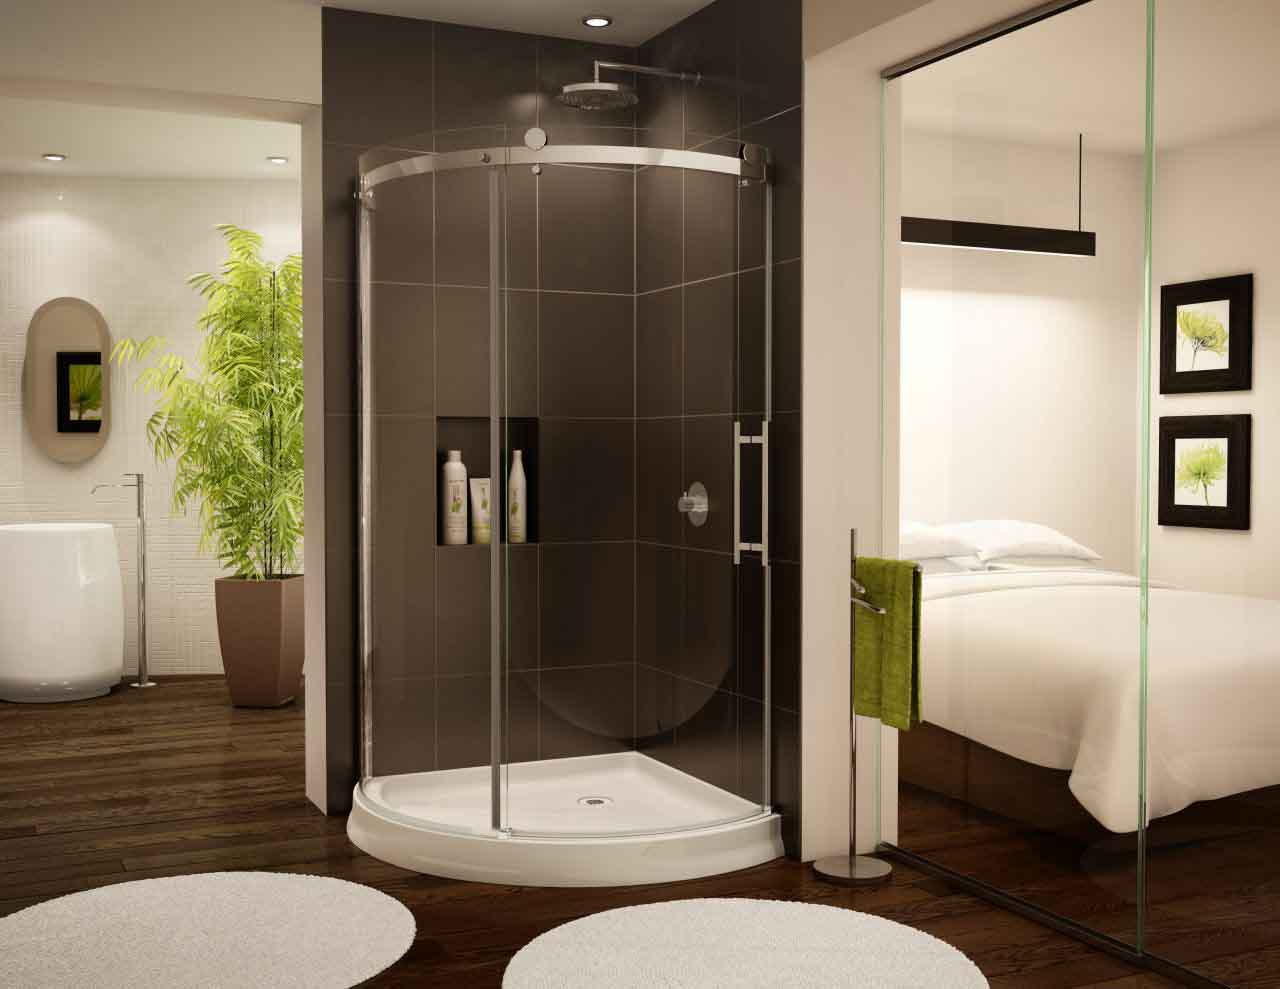 Luxurious bedroom with attached bathroom having frameless shower screen